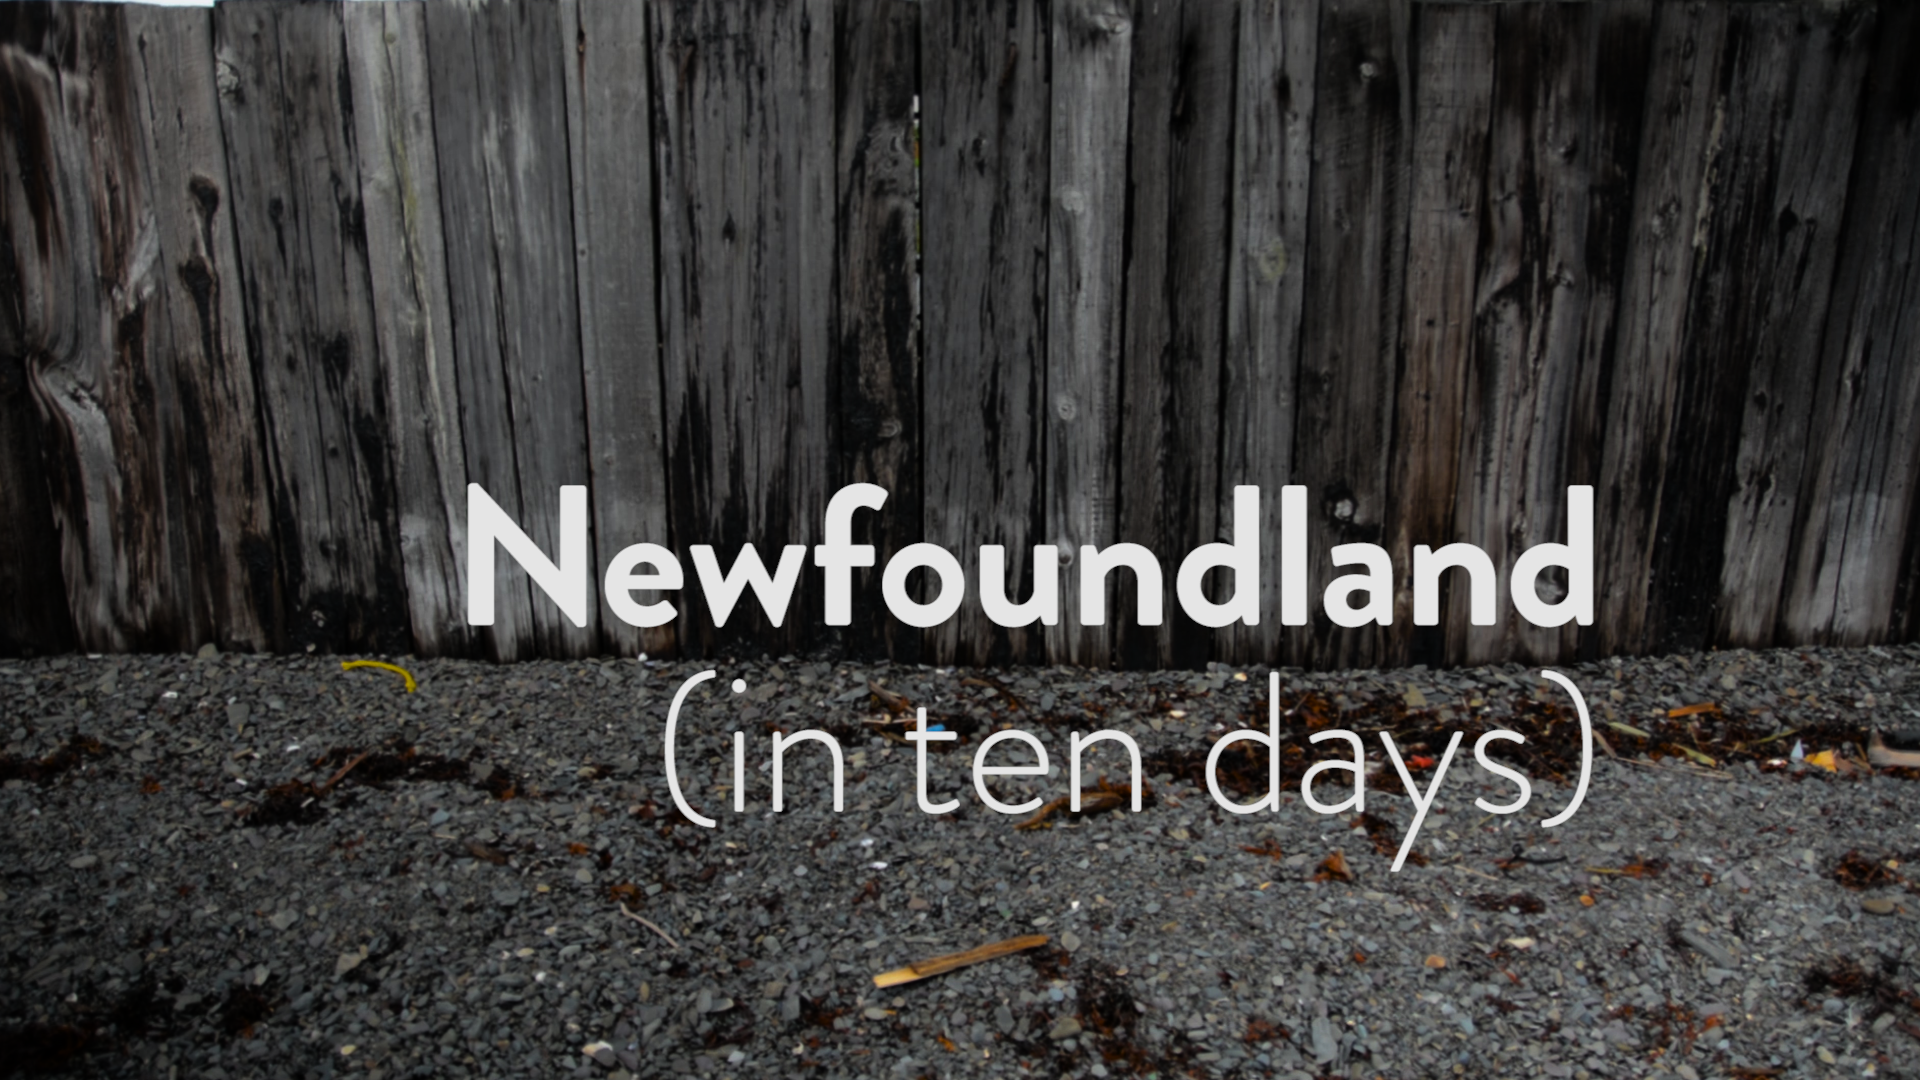 Newfoundland travel video viral success. Video advertising, digital marketing viral video